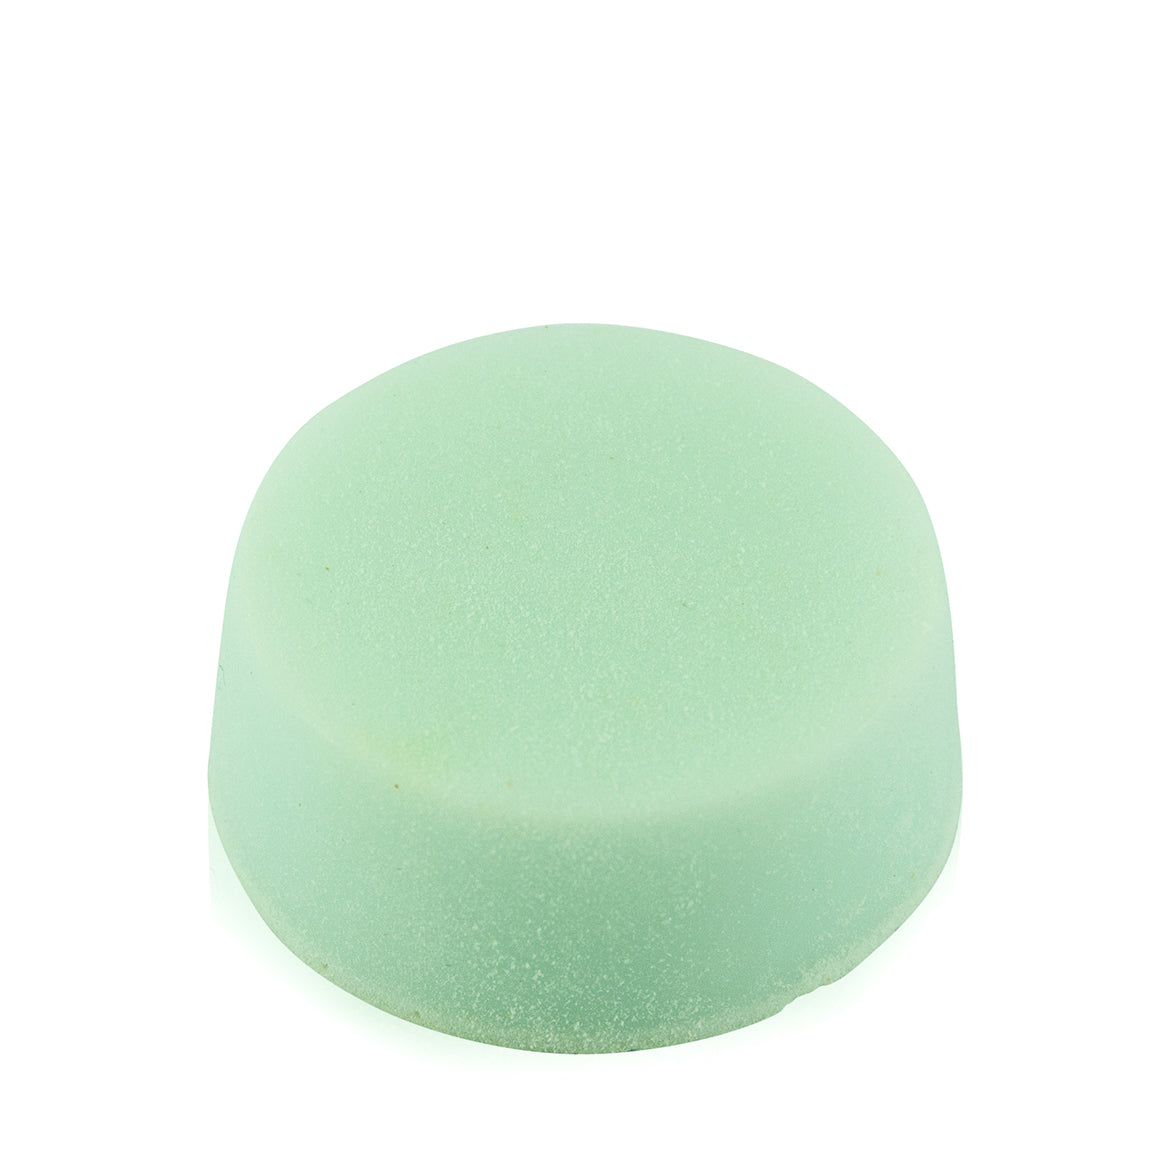 Naked Shampoo Soft Bar